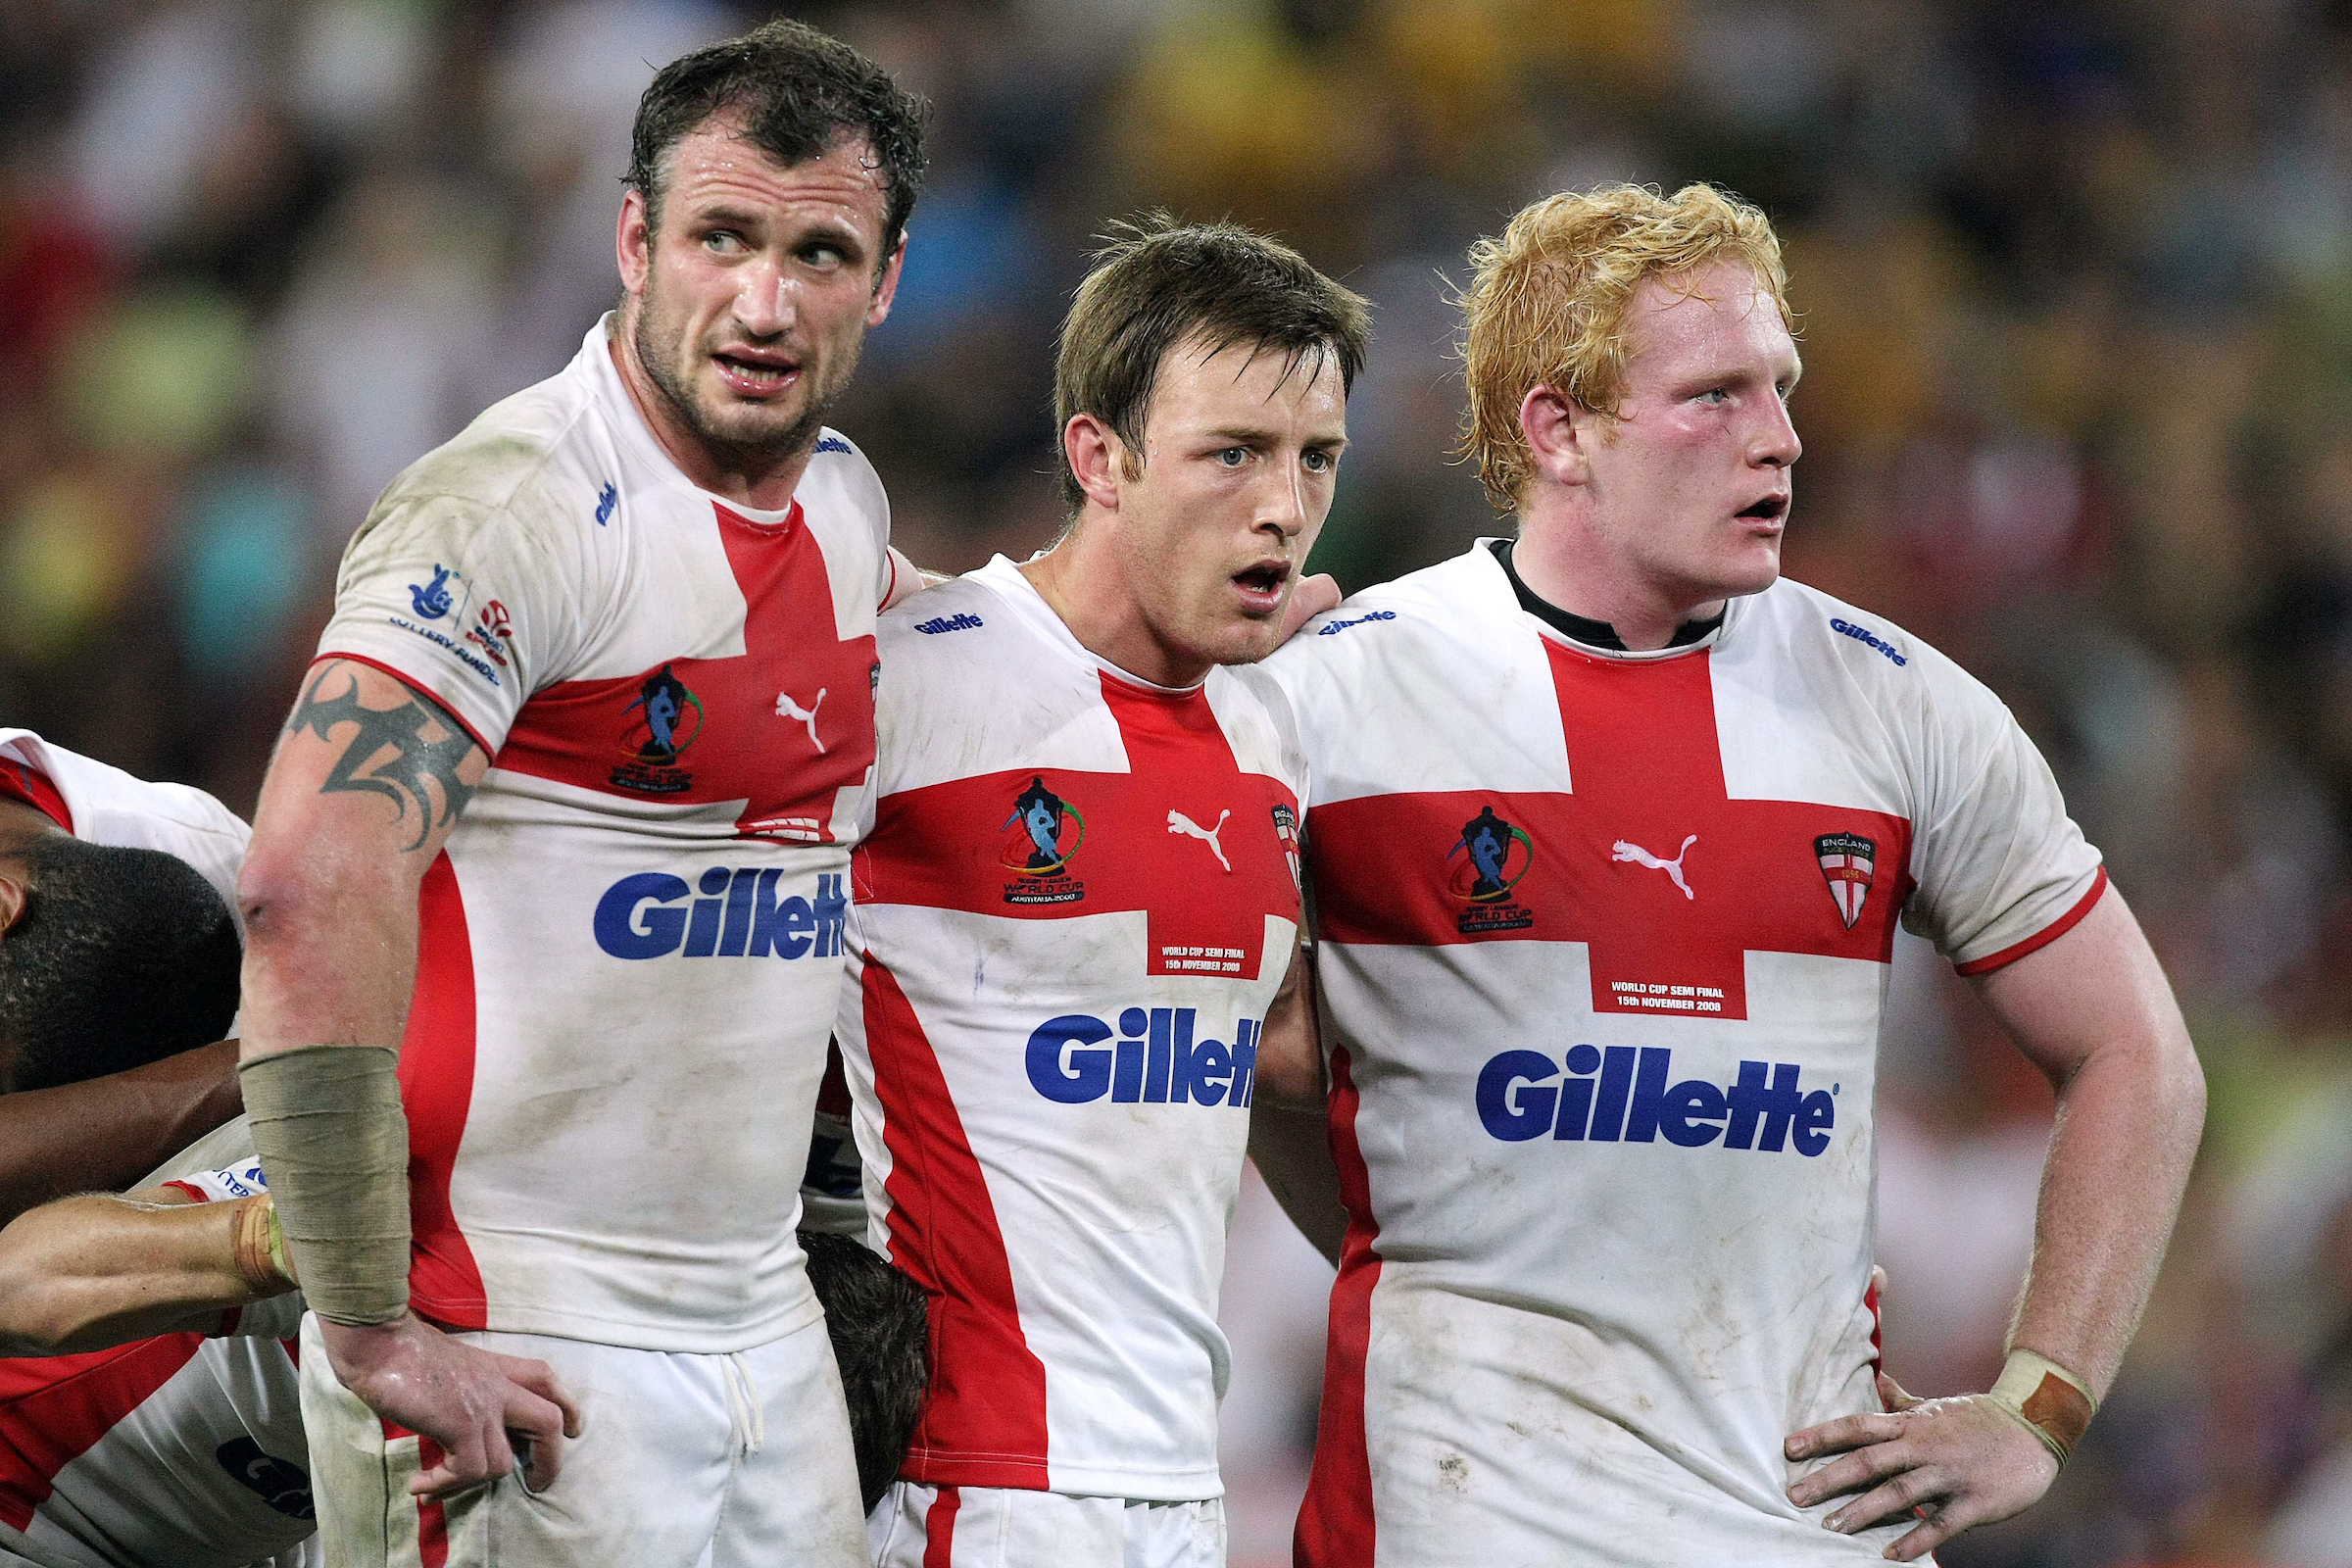 Roby (centre) with Jamie Peacock and James Graham